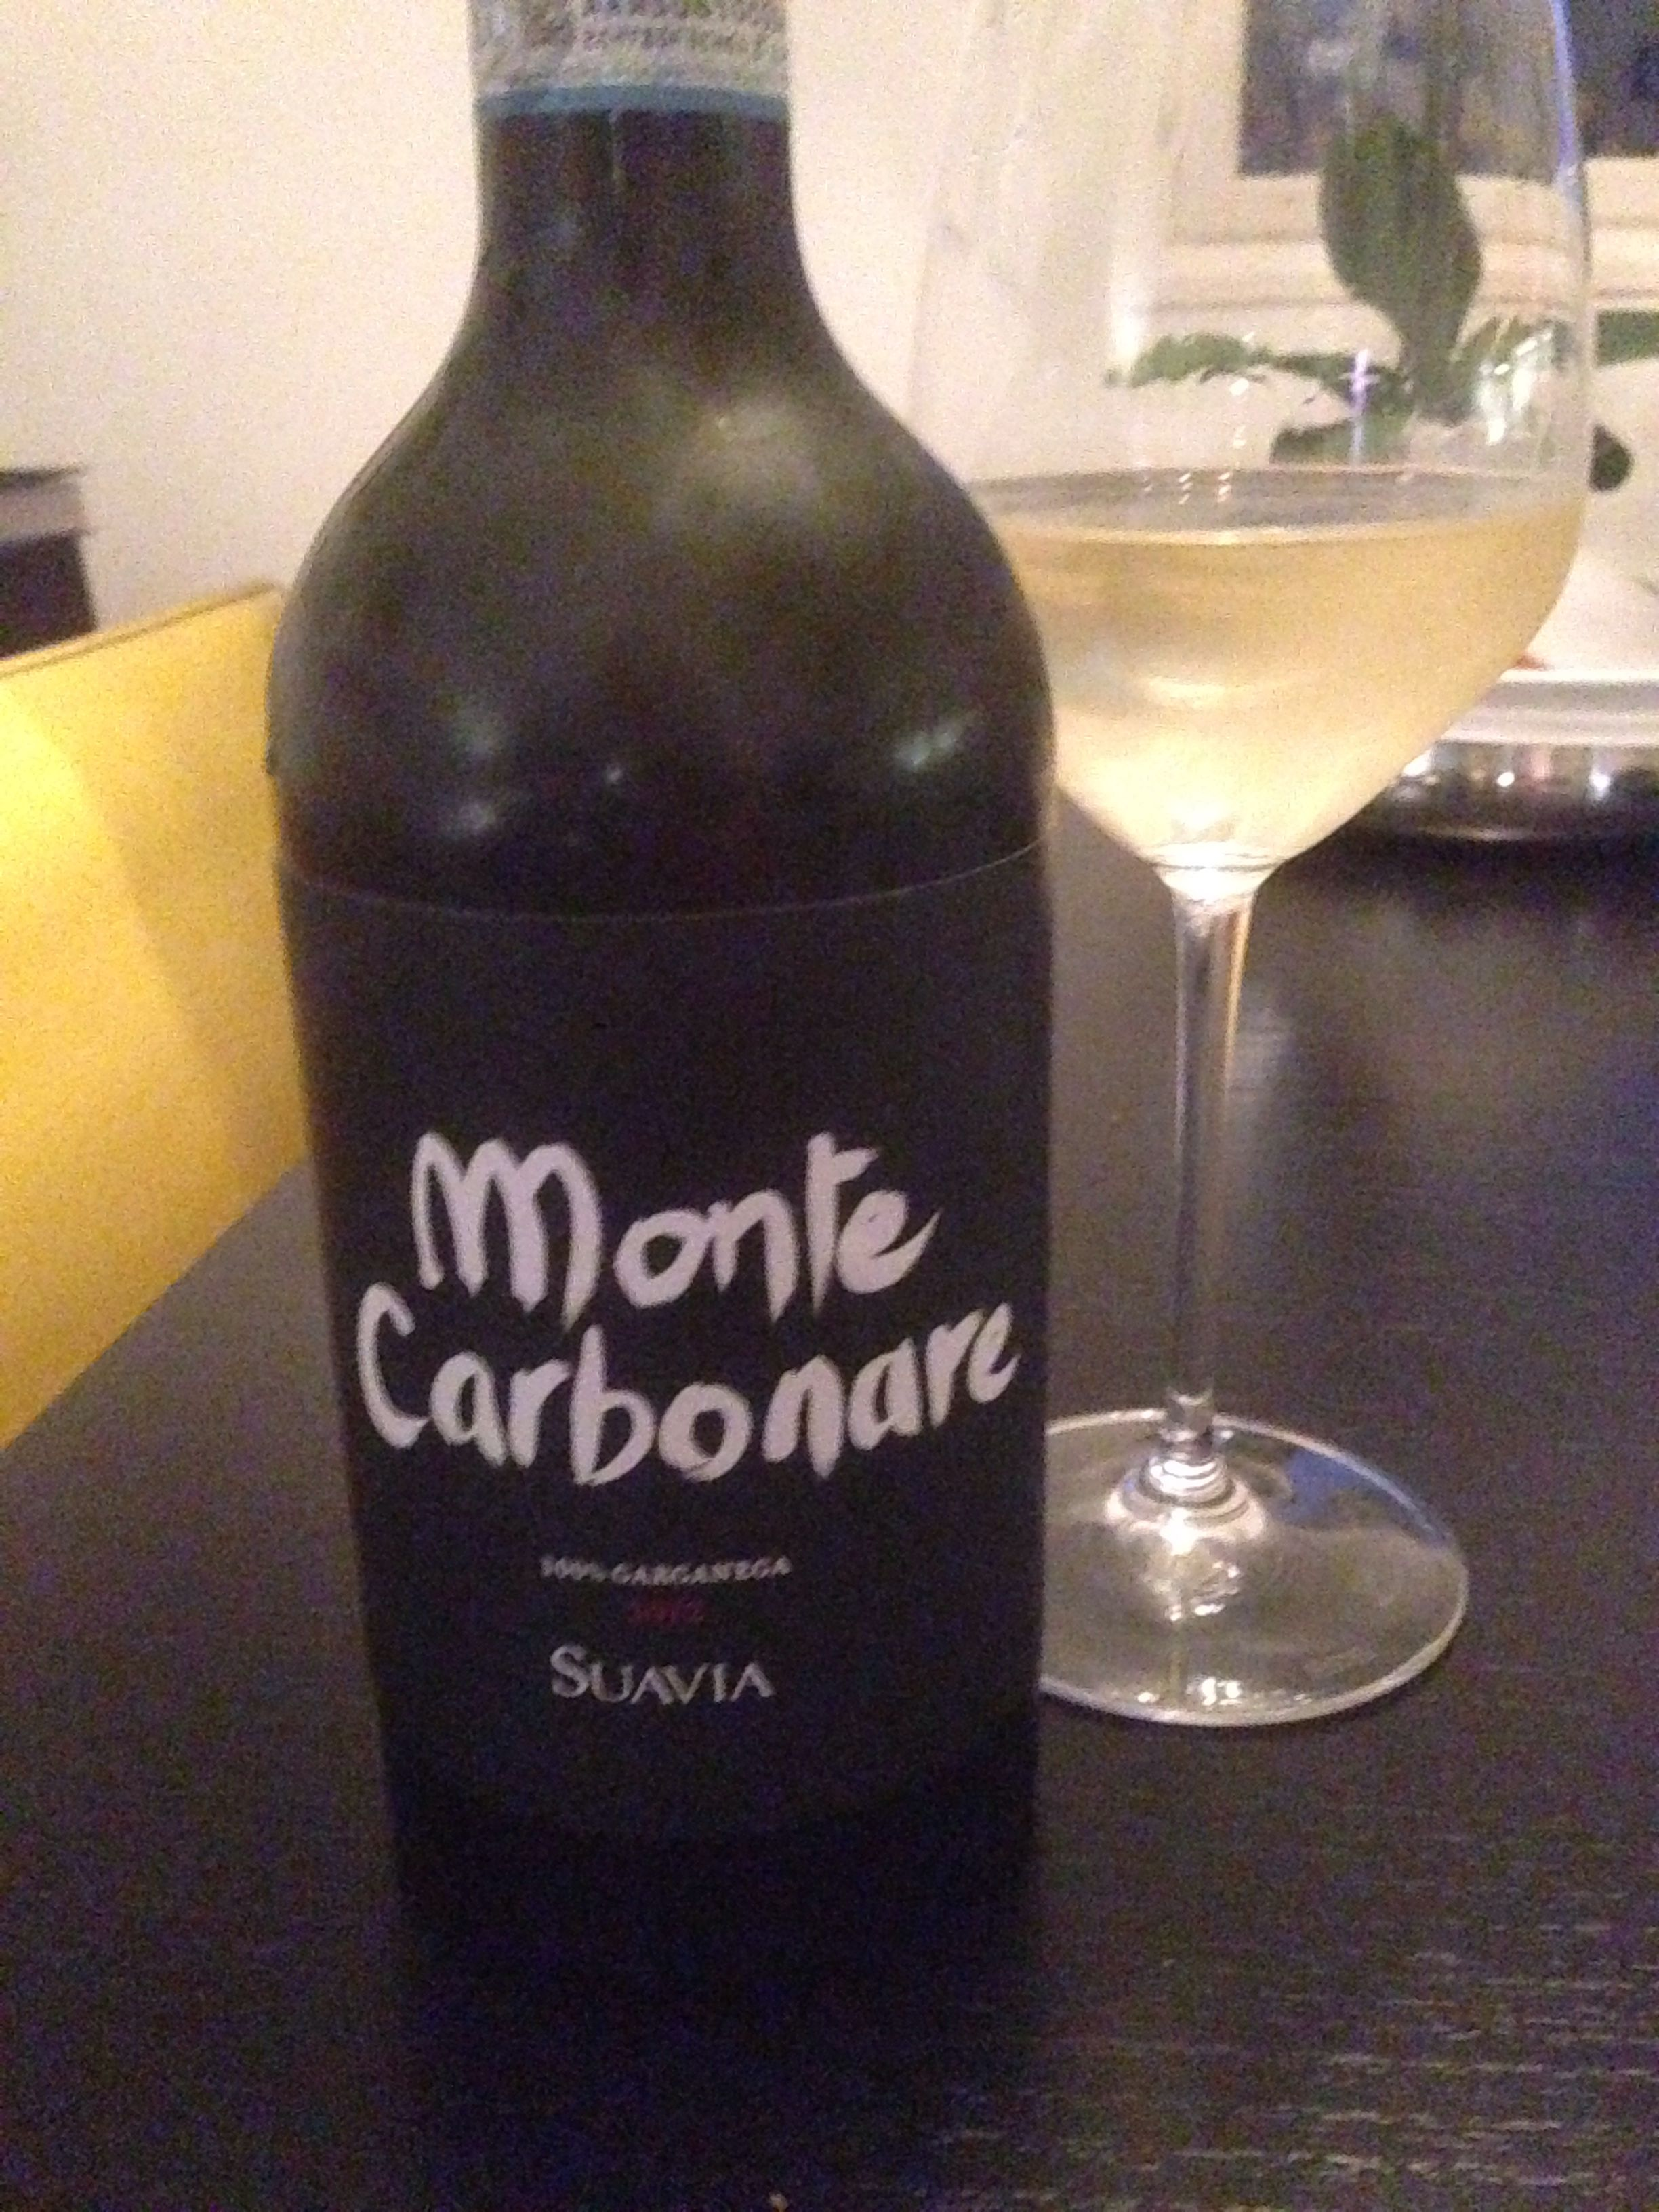 Nice And delicate Soave!